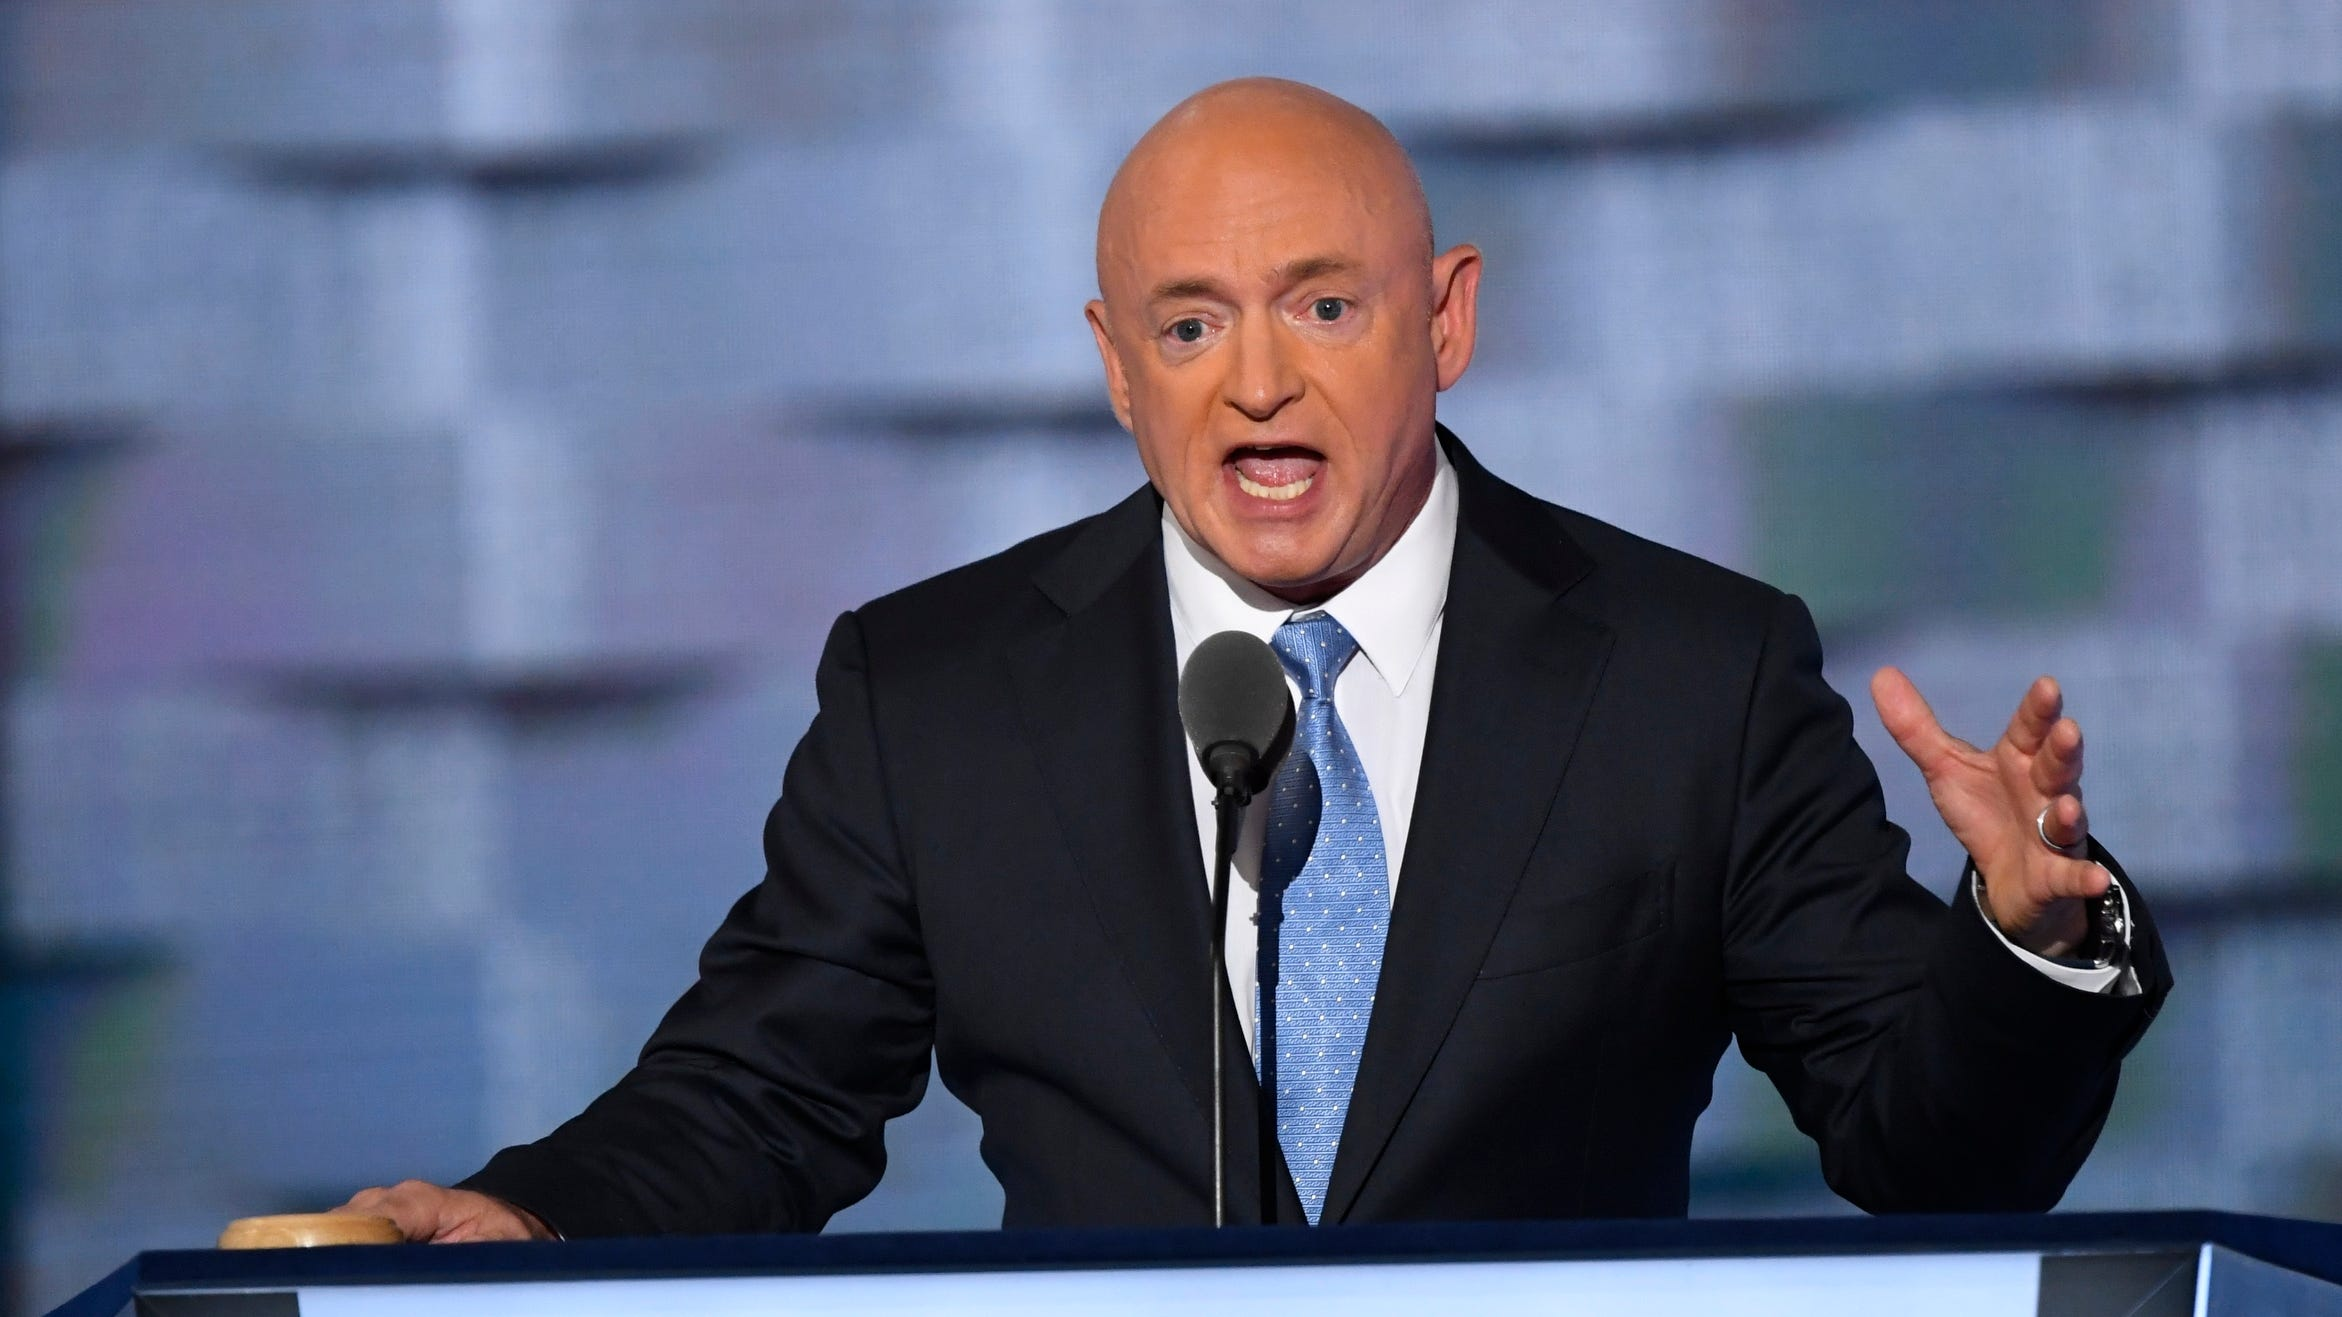 Retired Navy Captain and former NASA Astronaut Mark Kelly speaks on stage during the 2016 Democratic National Convention in Philadelphia on July 27, 2016.